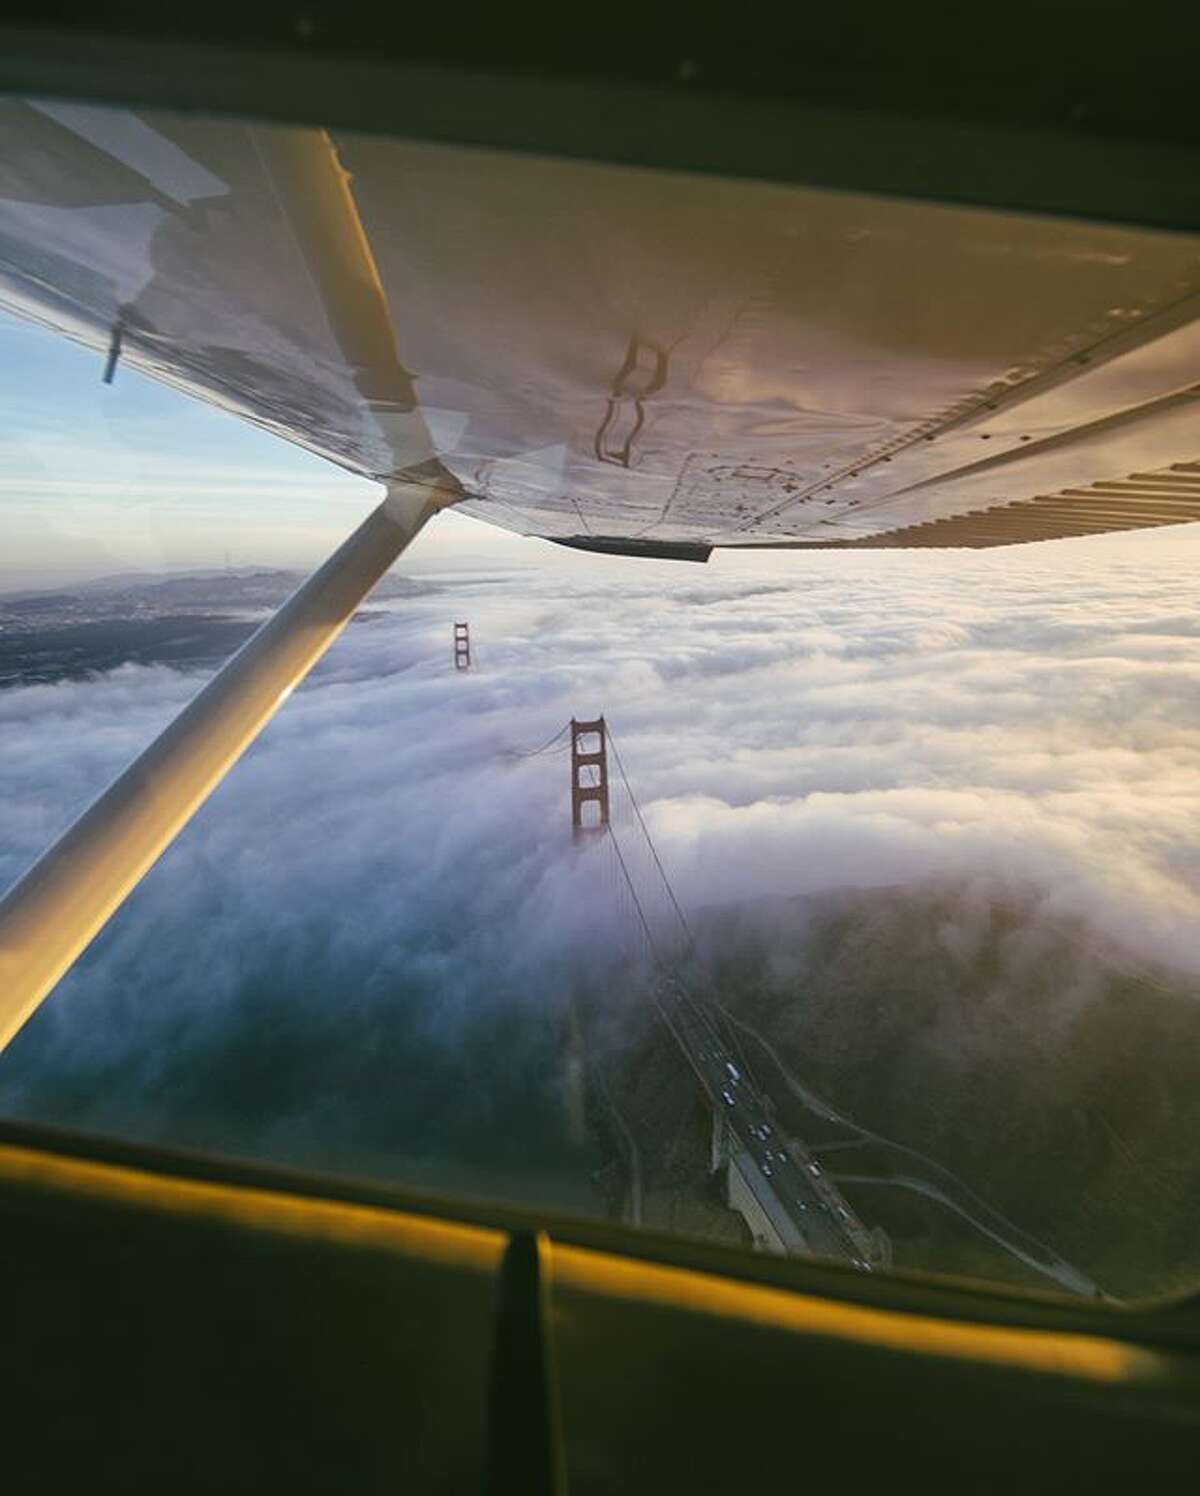 @sbdunkscarl captured this image in a flight above the Golden Gate.